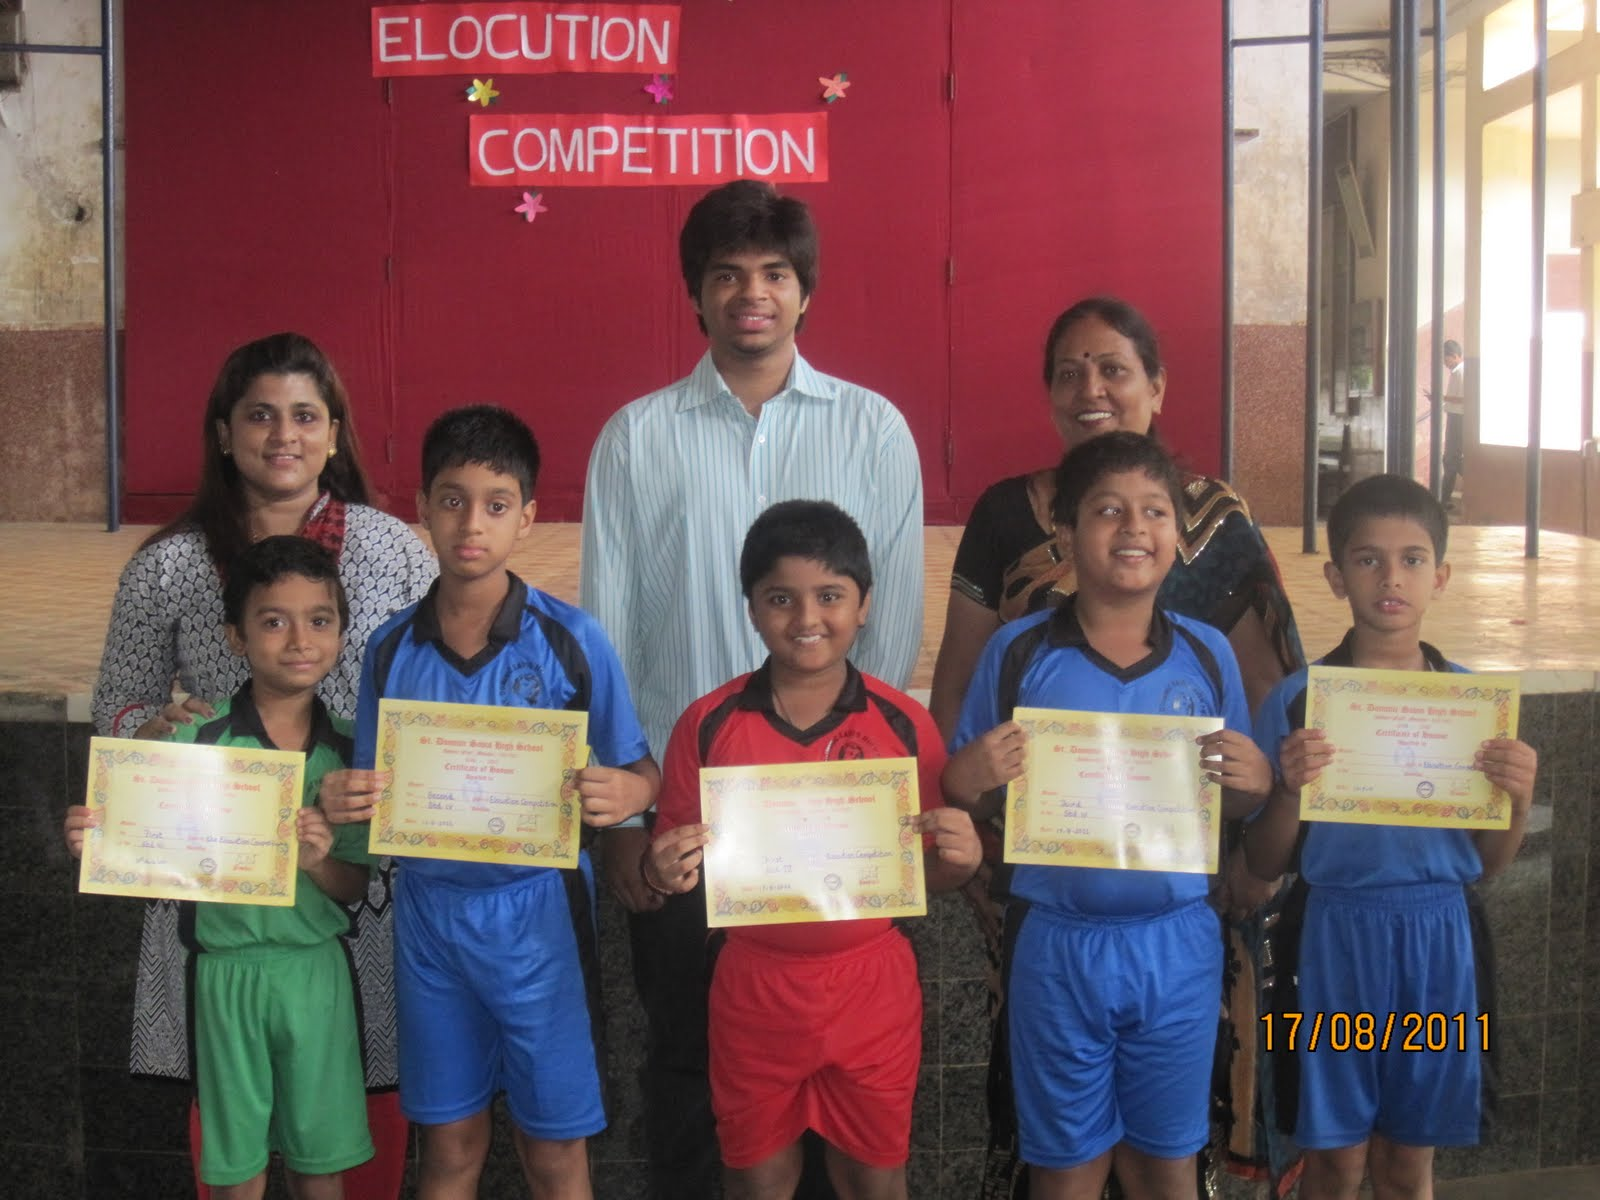 prize winning poems for elocution